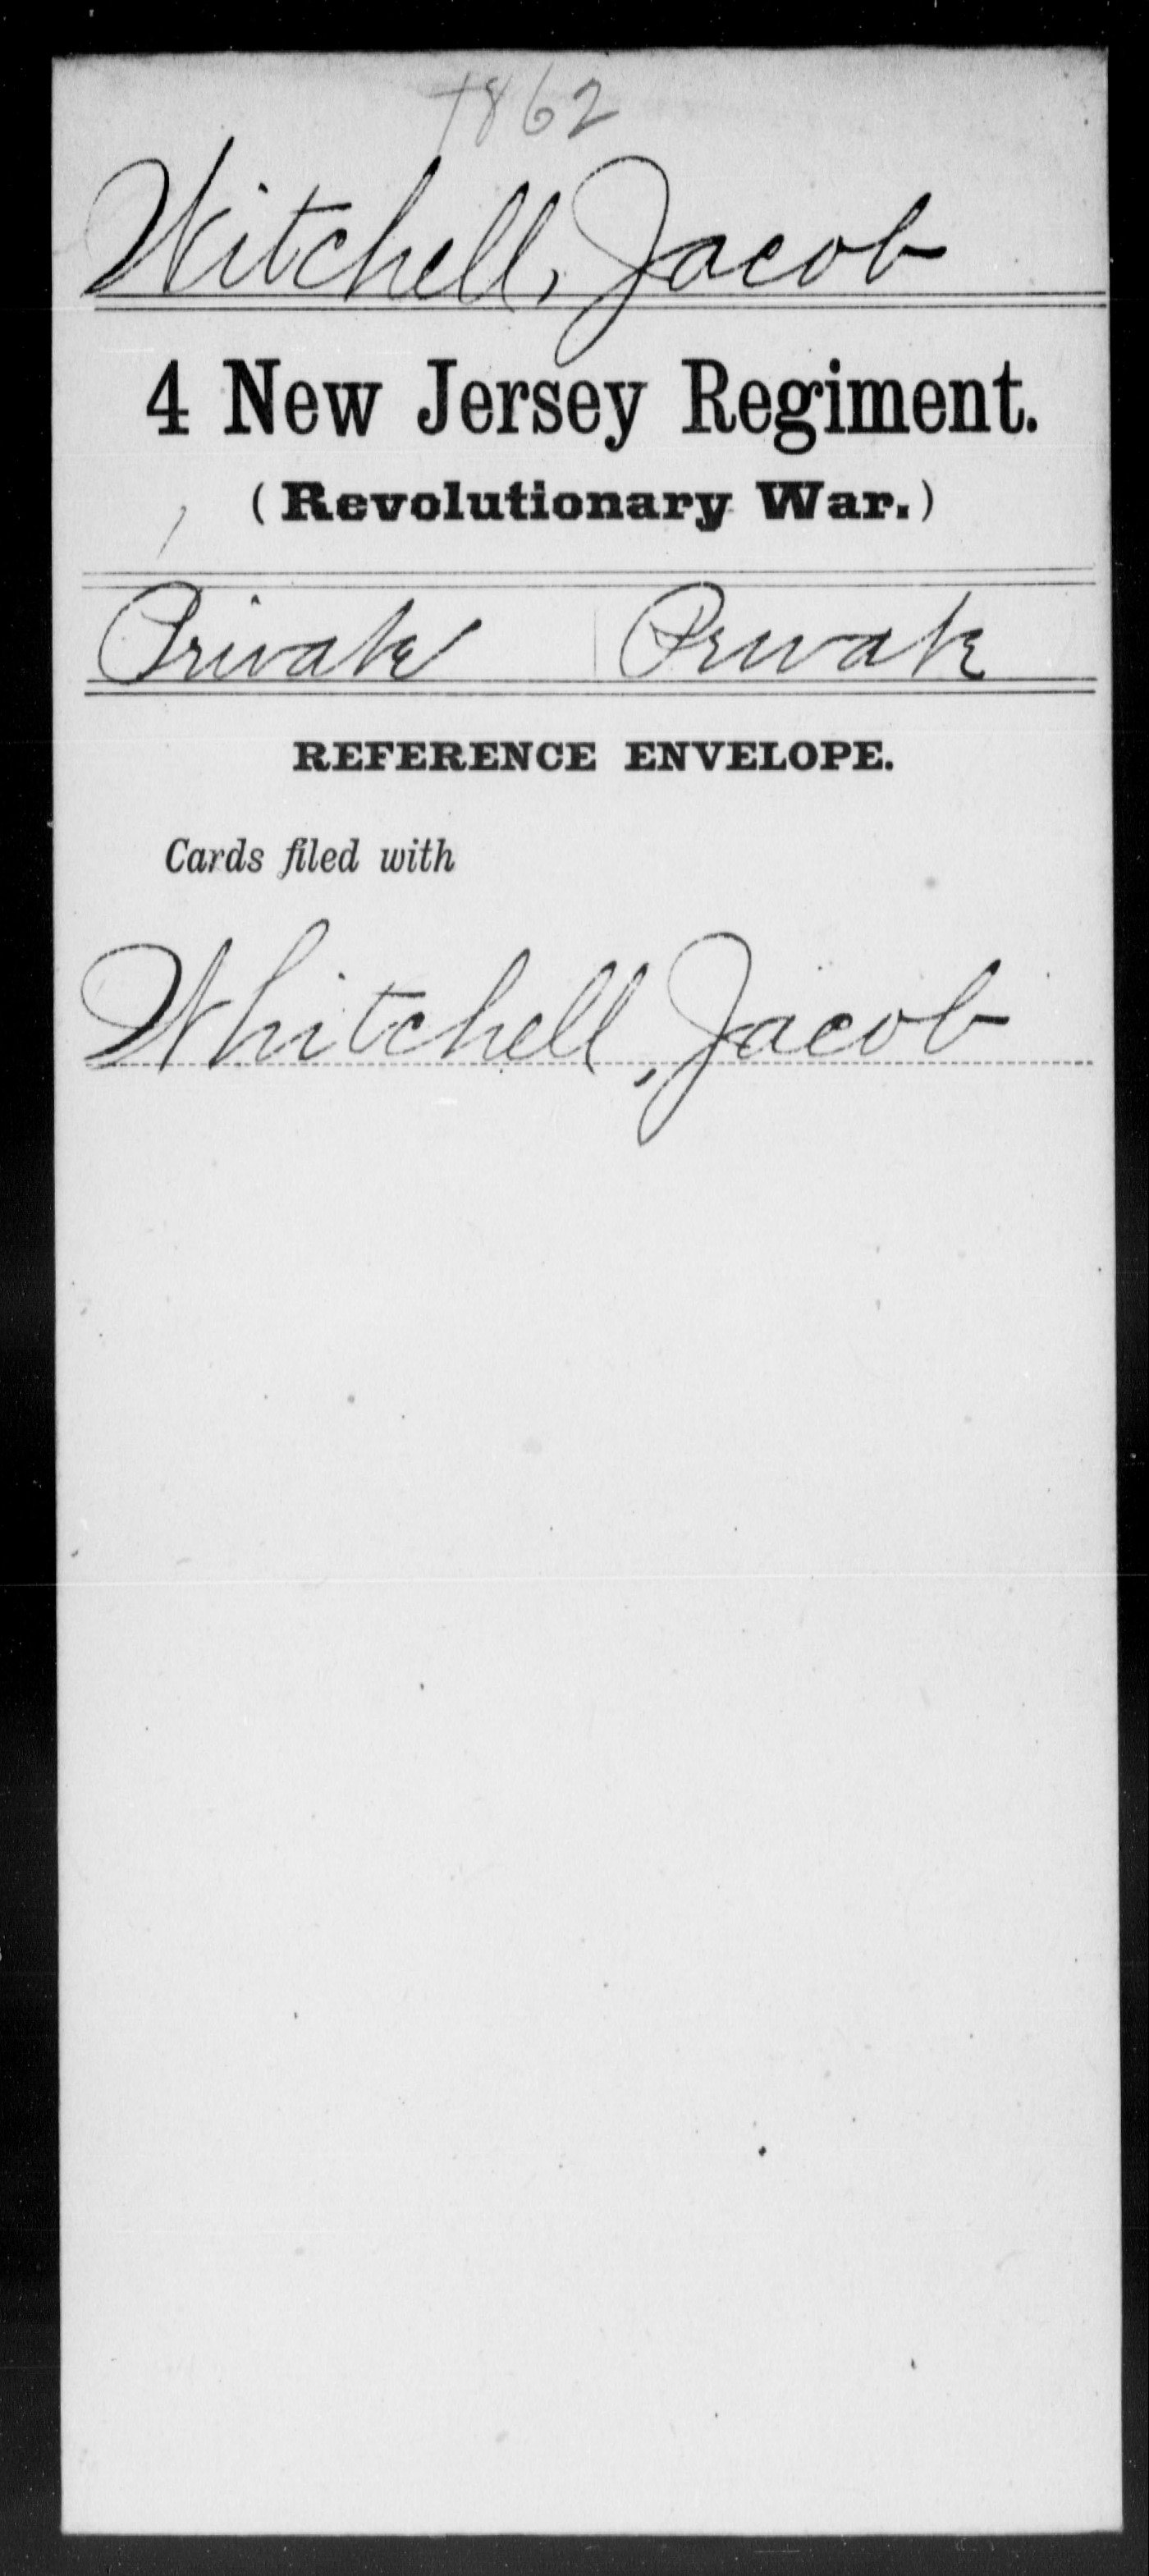 Witchell, Jacob - New Jersey - Fourth Regiment